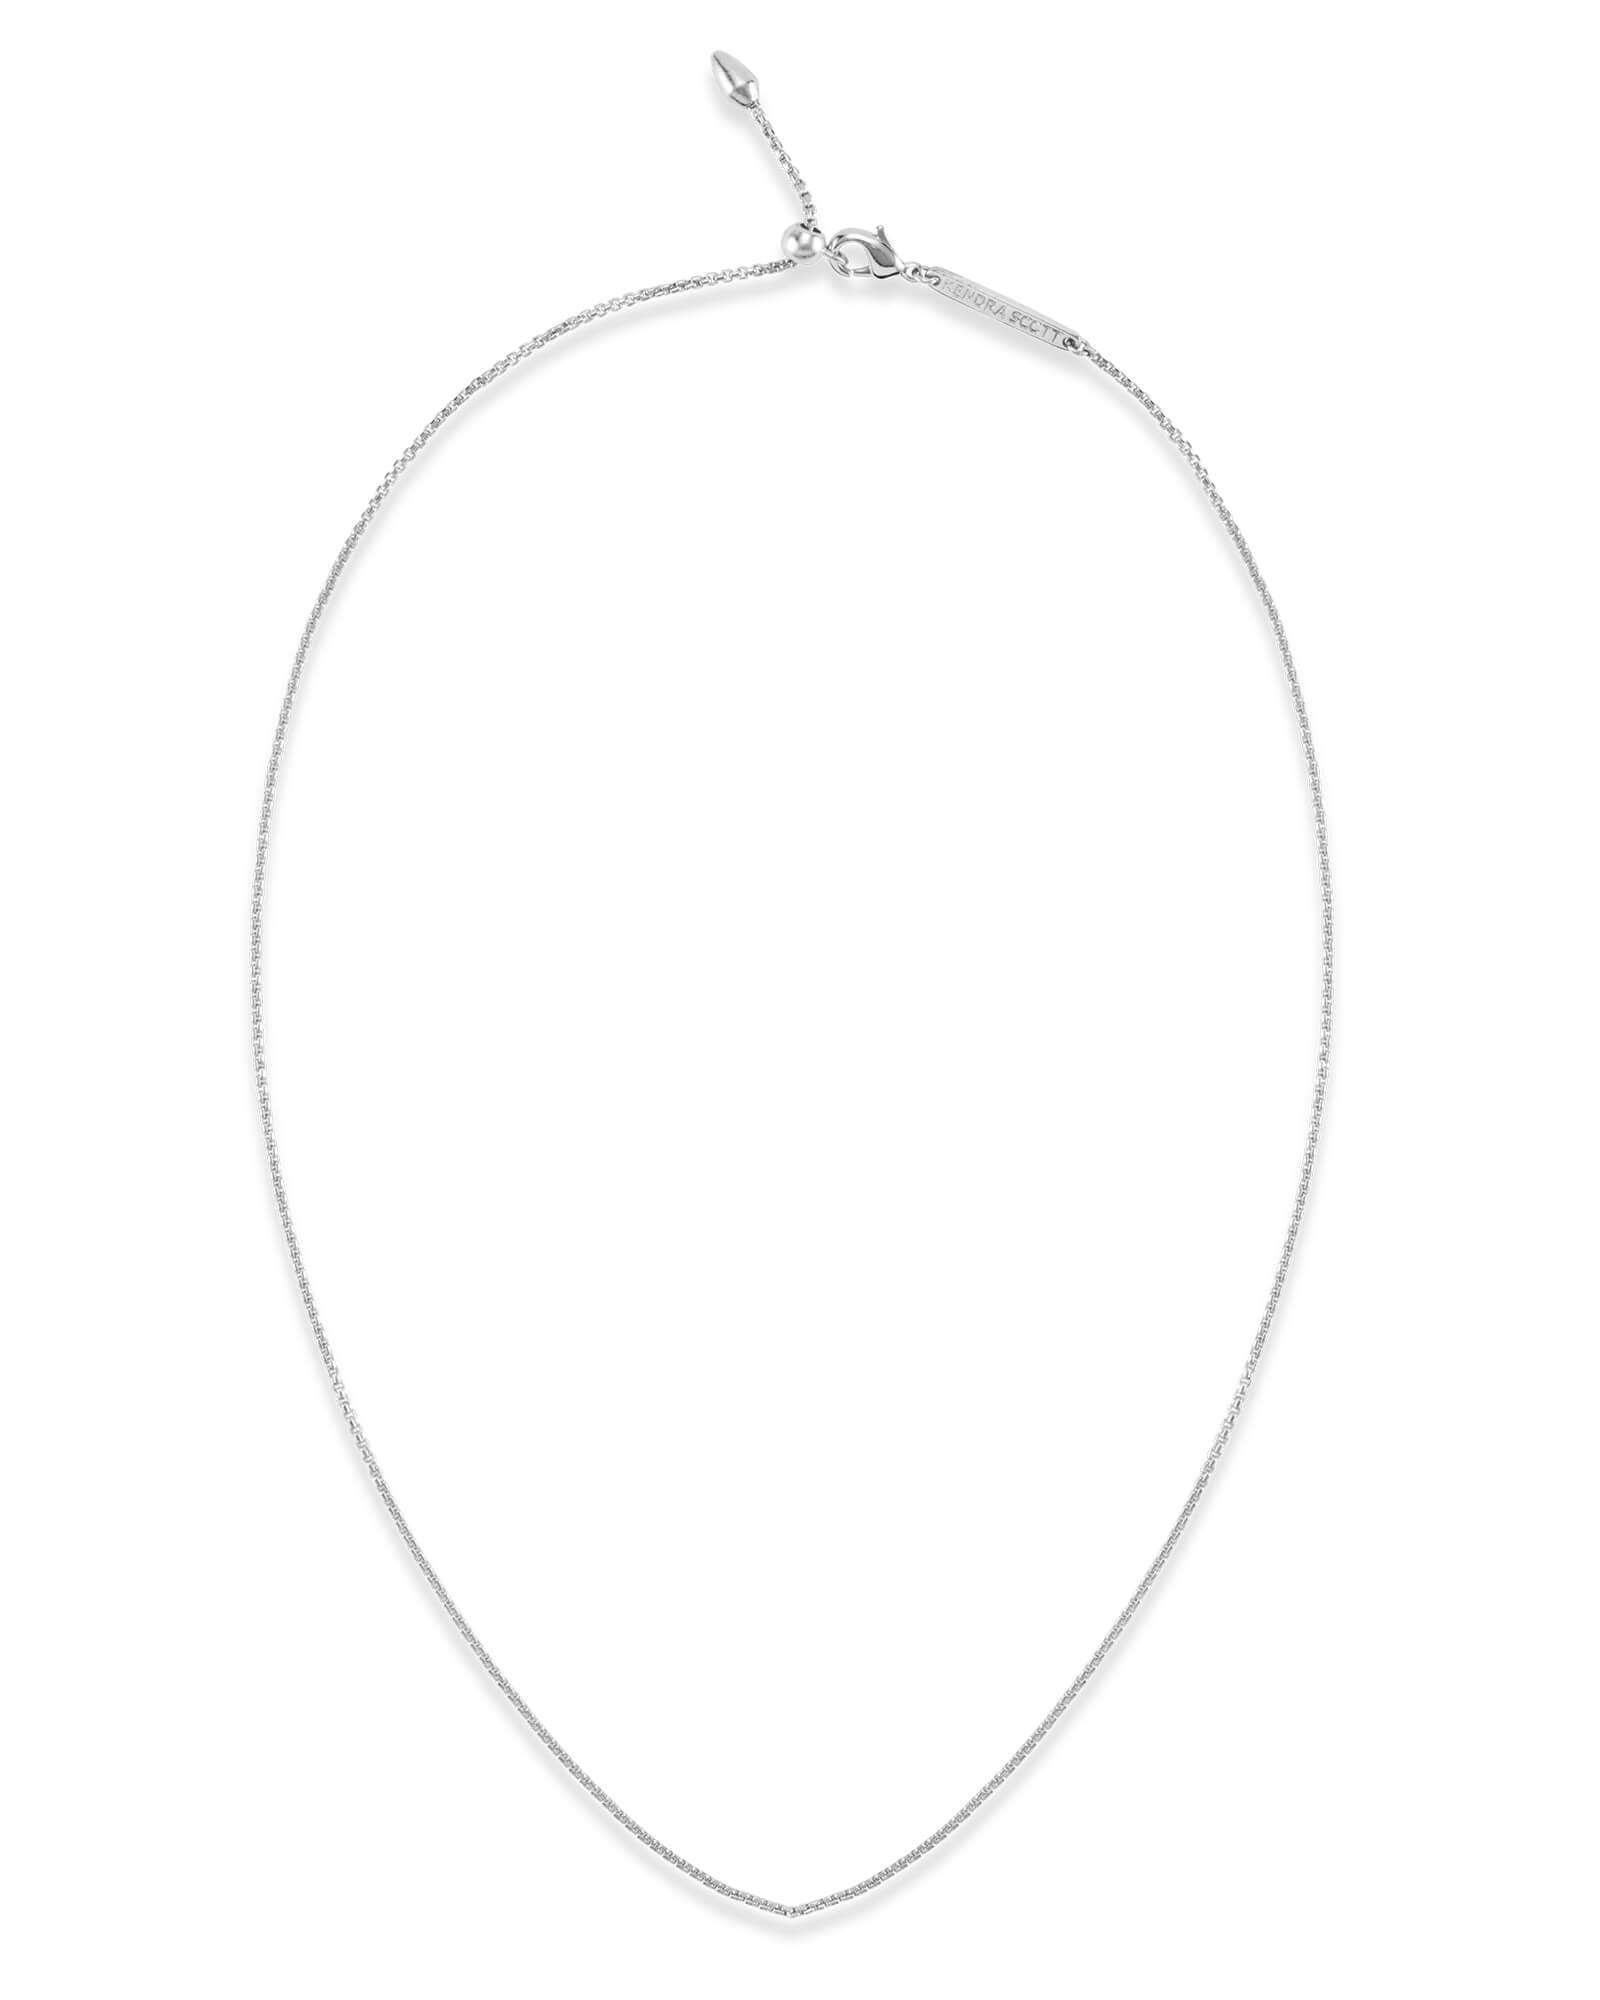 Petite Thin Adjustable Chain Necklace in Silver